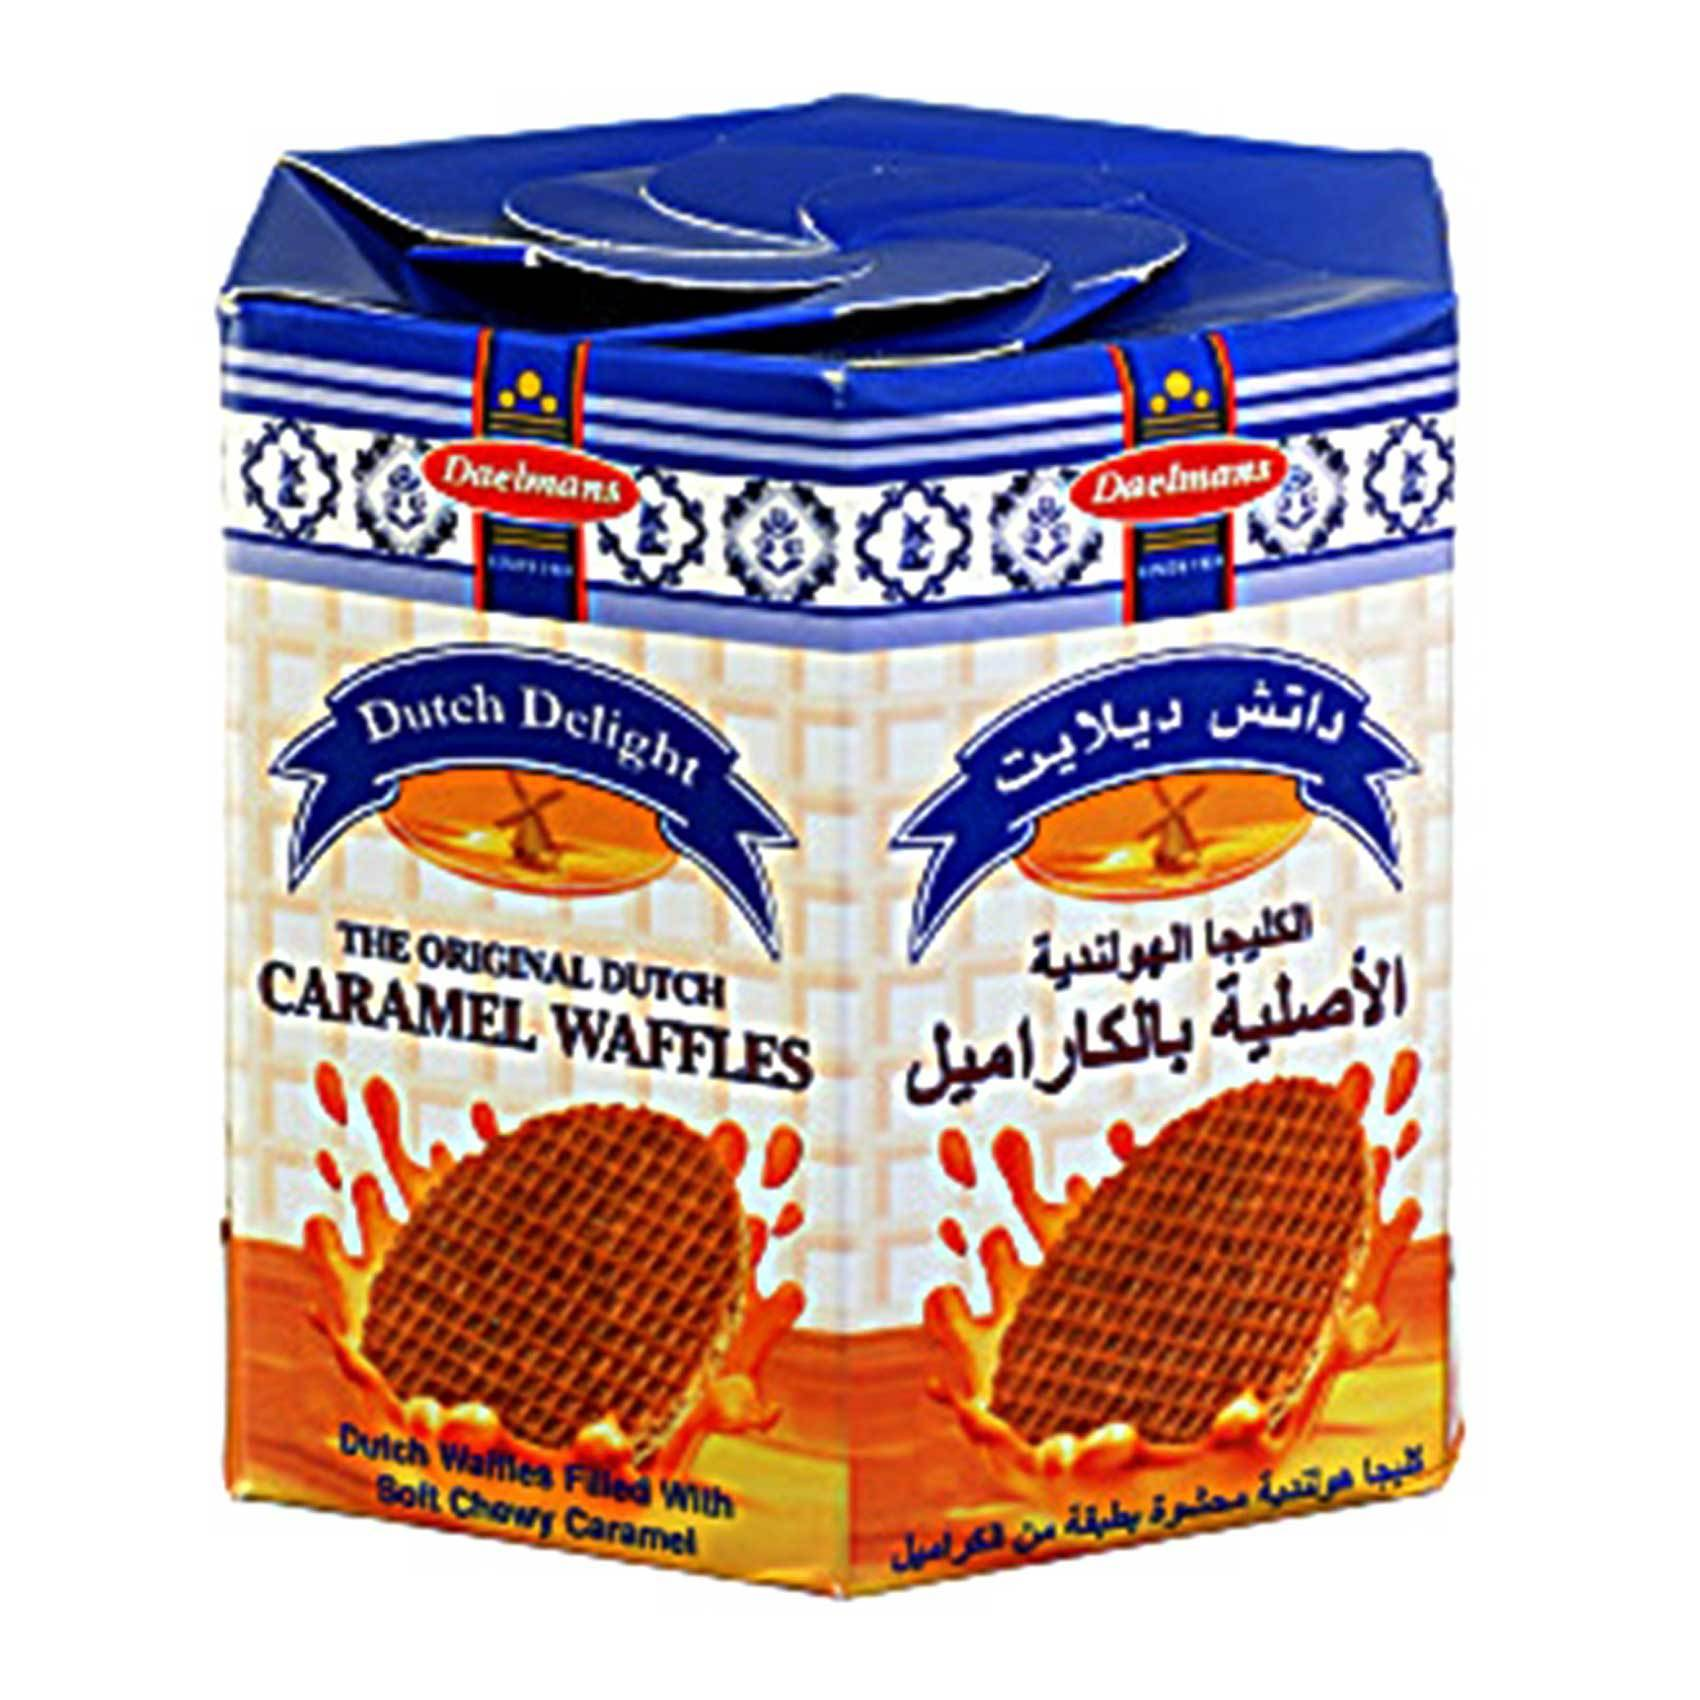 Buy Dutch Delights Caramel Waffles 230g Online Shop Food Cupboard On Carrefour Uae